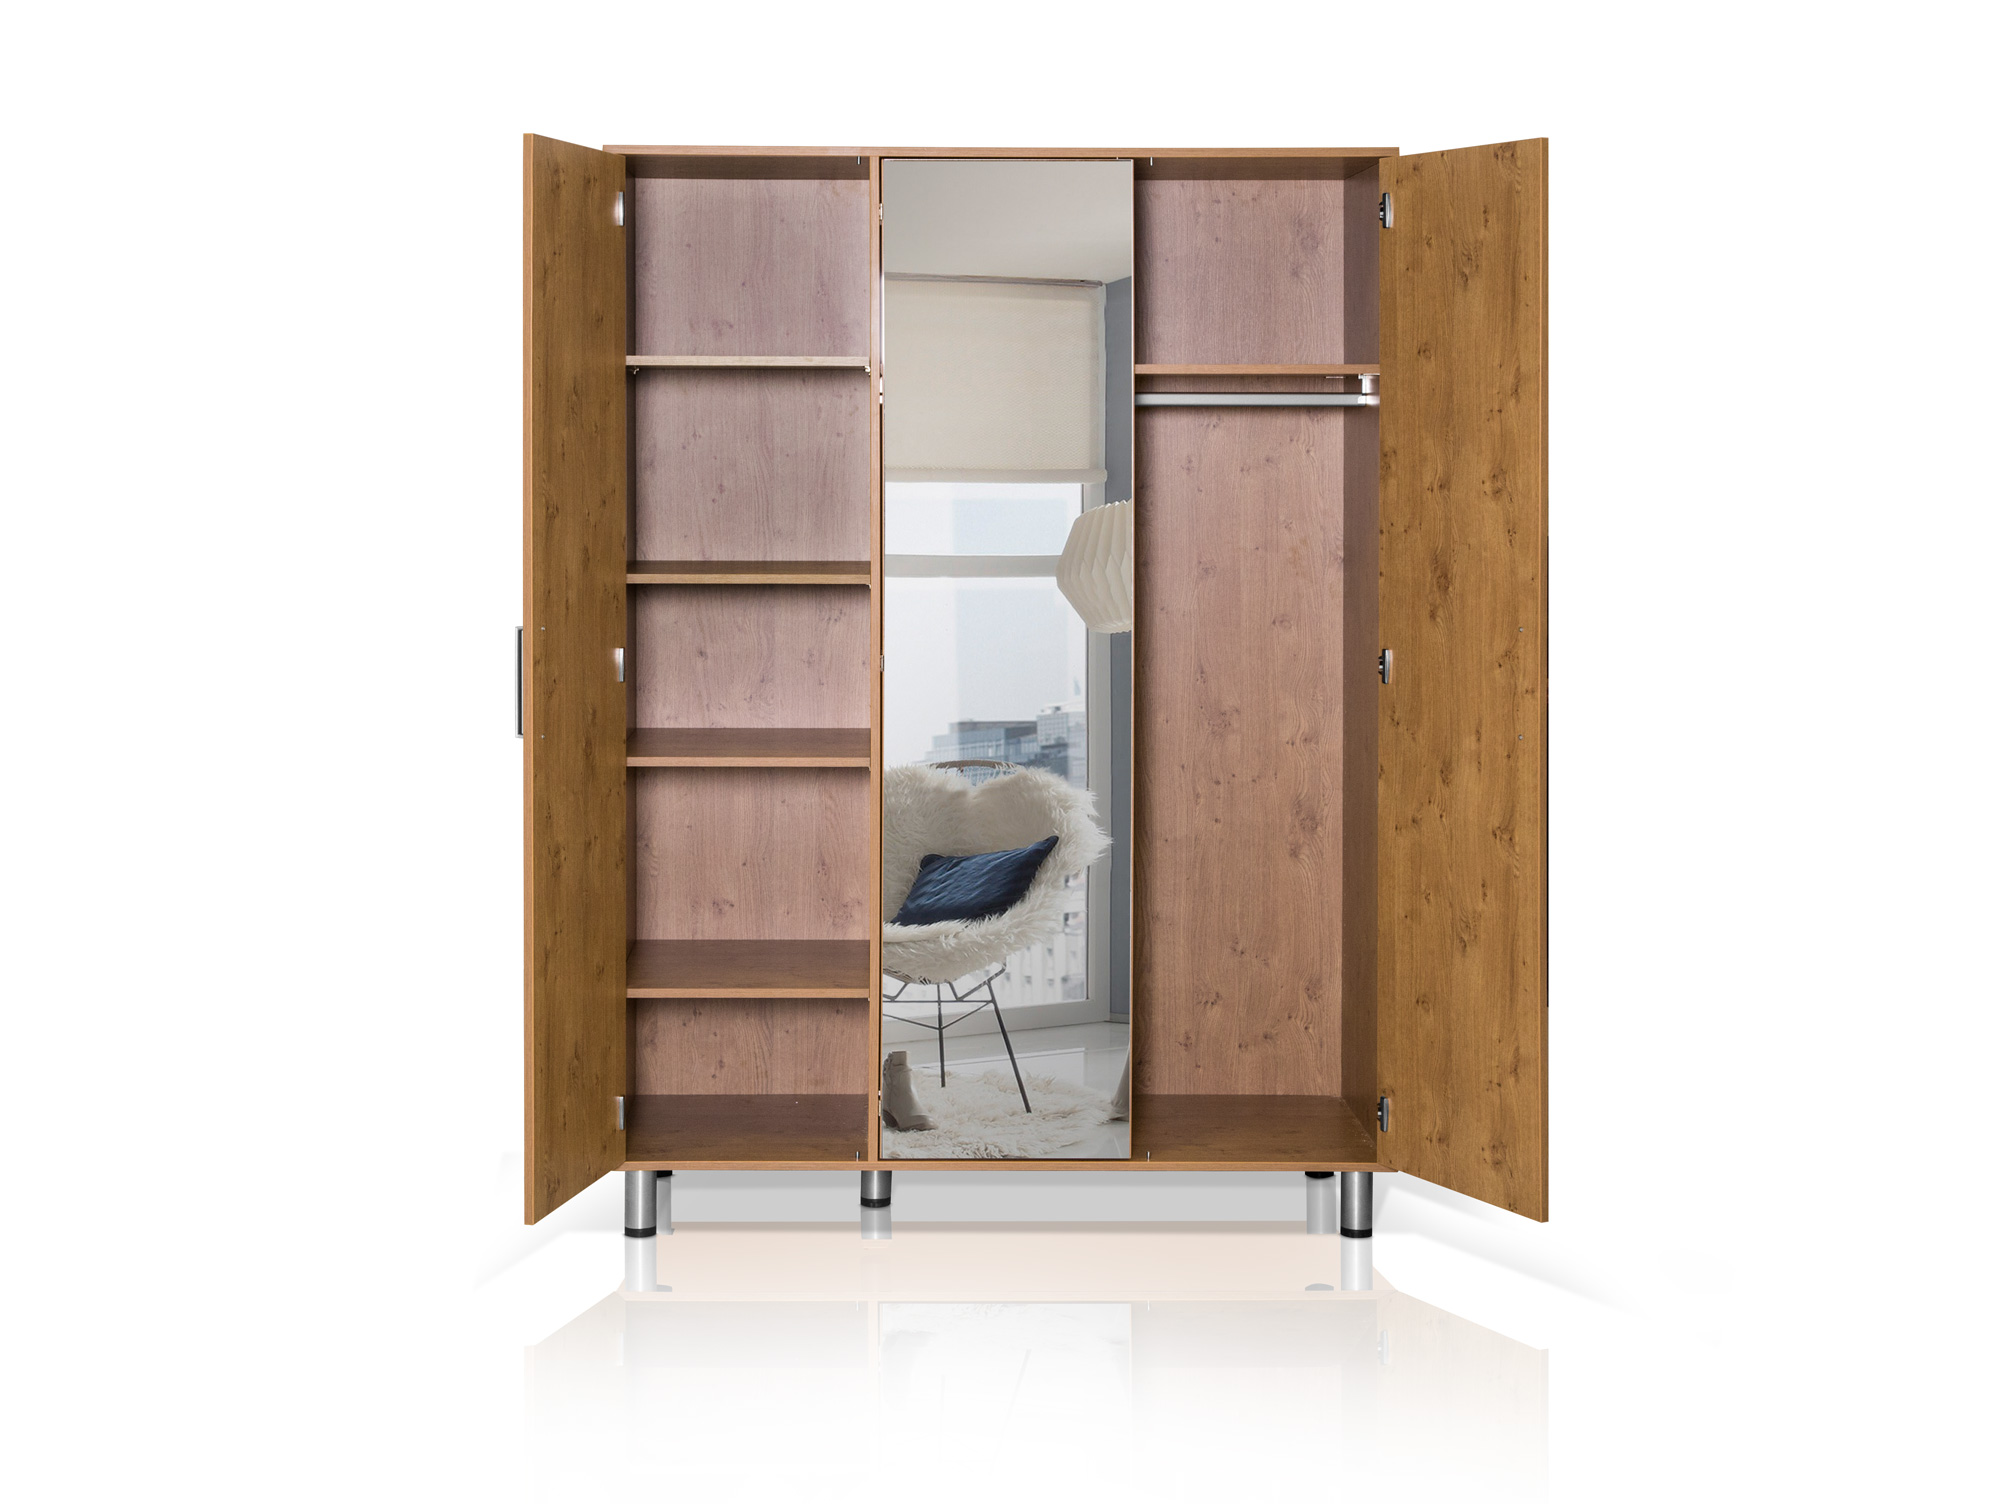 gro artig kleiderschrank innenleben planen fotos die schlafzimmerideen. Black Bedroom Furniture Sets. Home Design Ideas